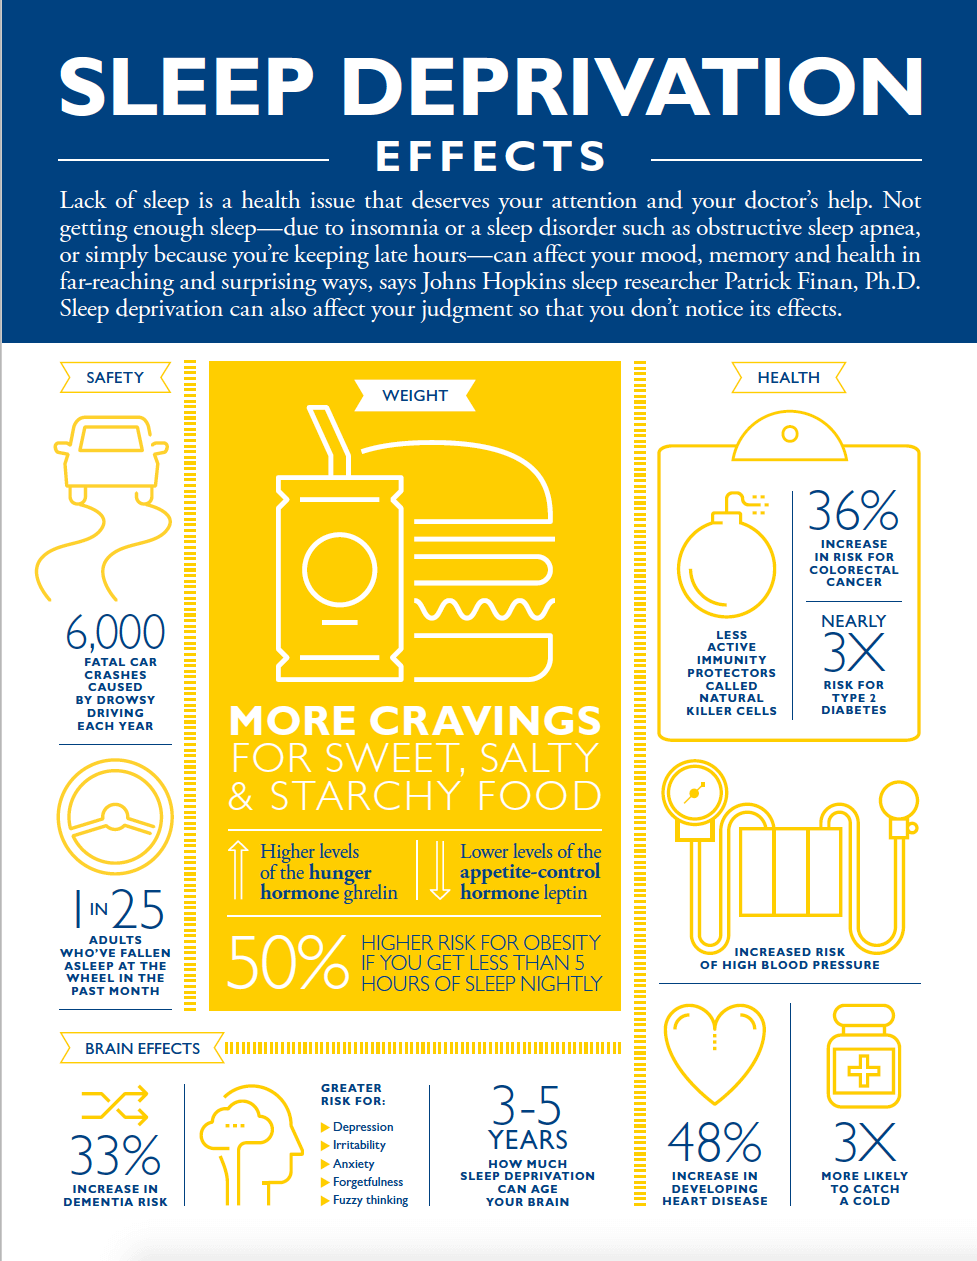 A blue and gold infographic from Johns Hopkins details sleep deprivation's effects on safety, weight, health, and the brain.